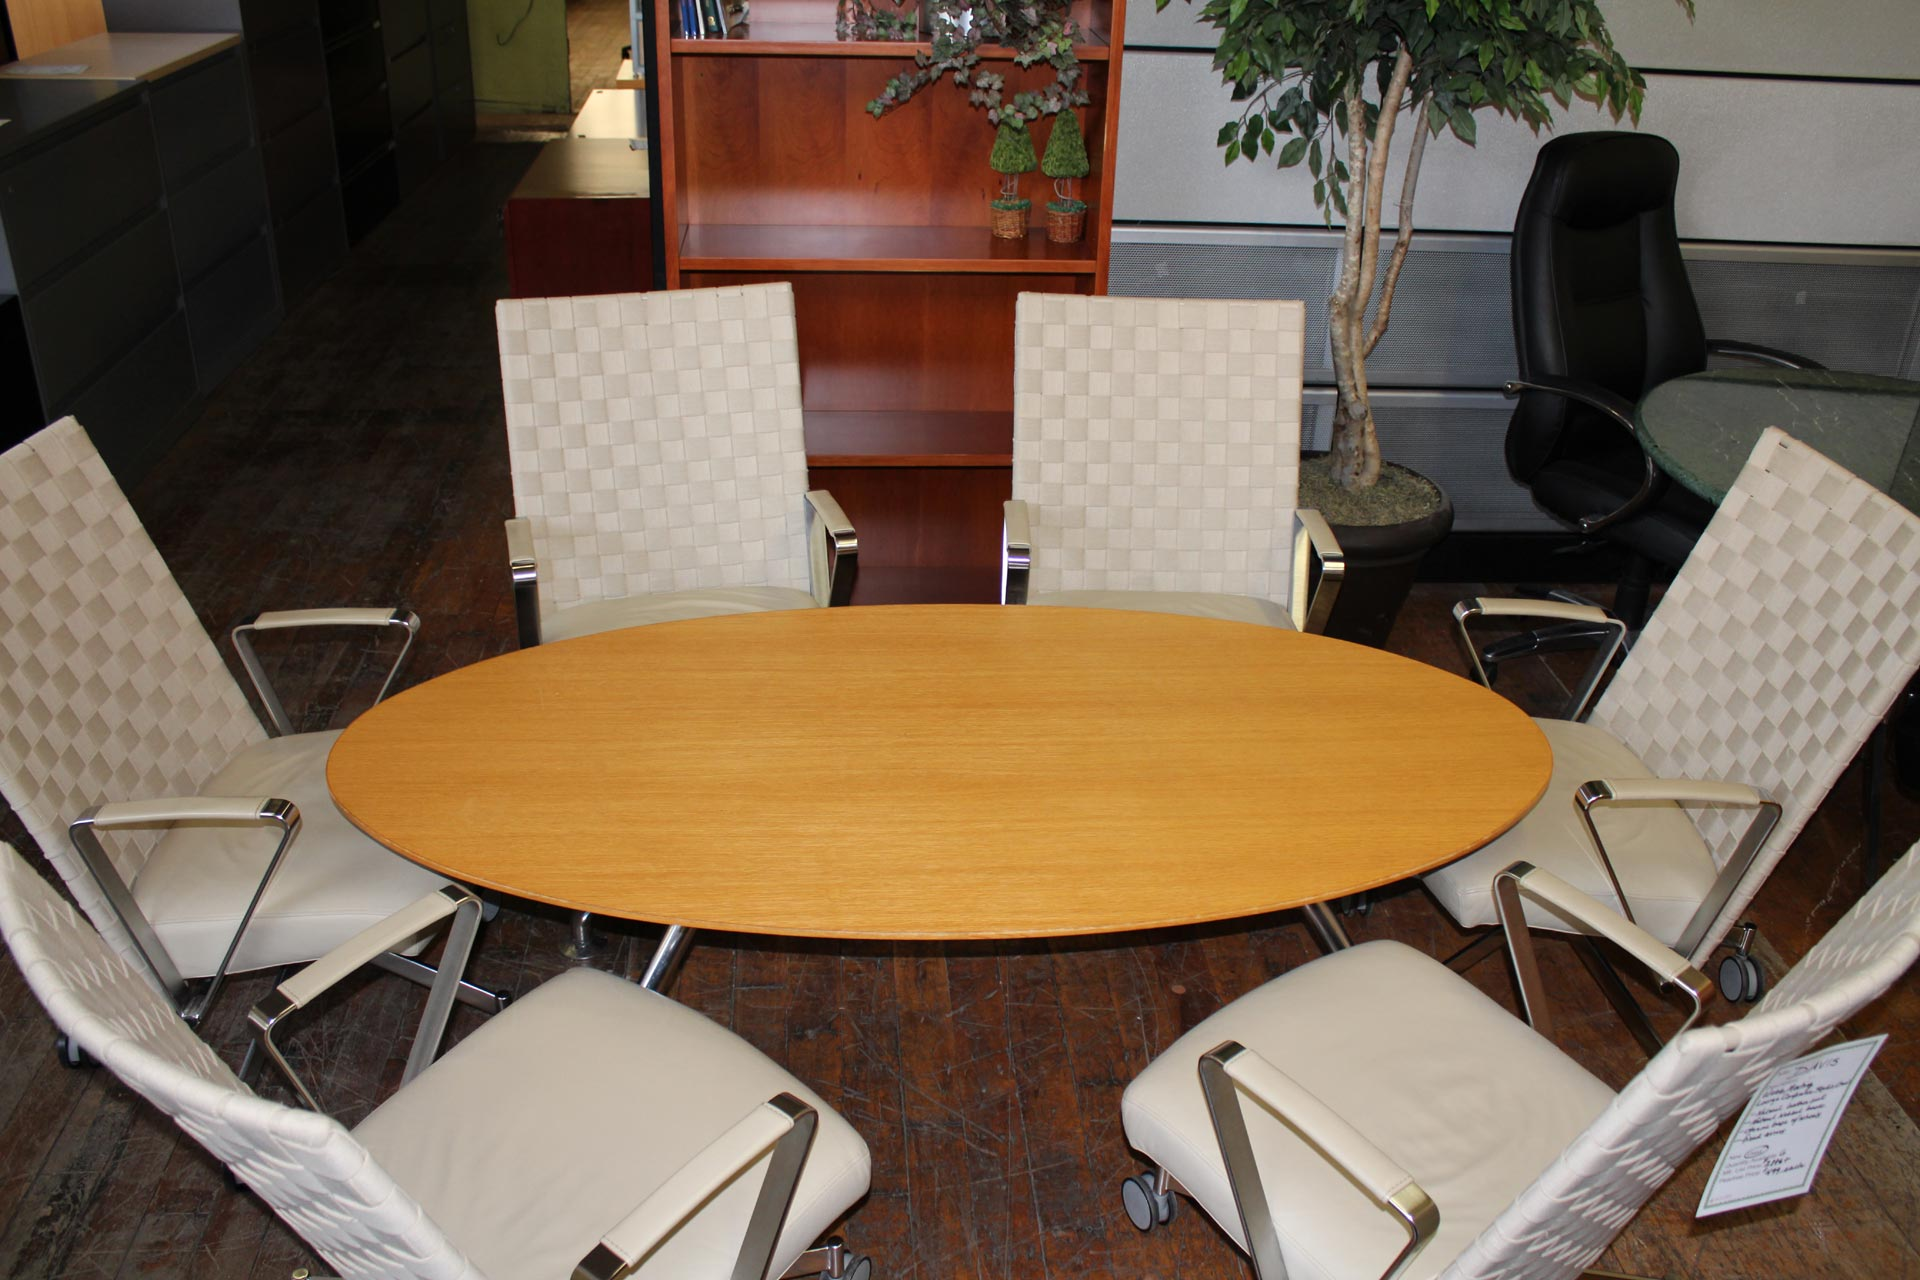 peartreeofficefurniture_peartreeofficefurniture_t221a.jpg